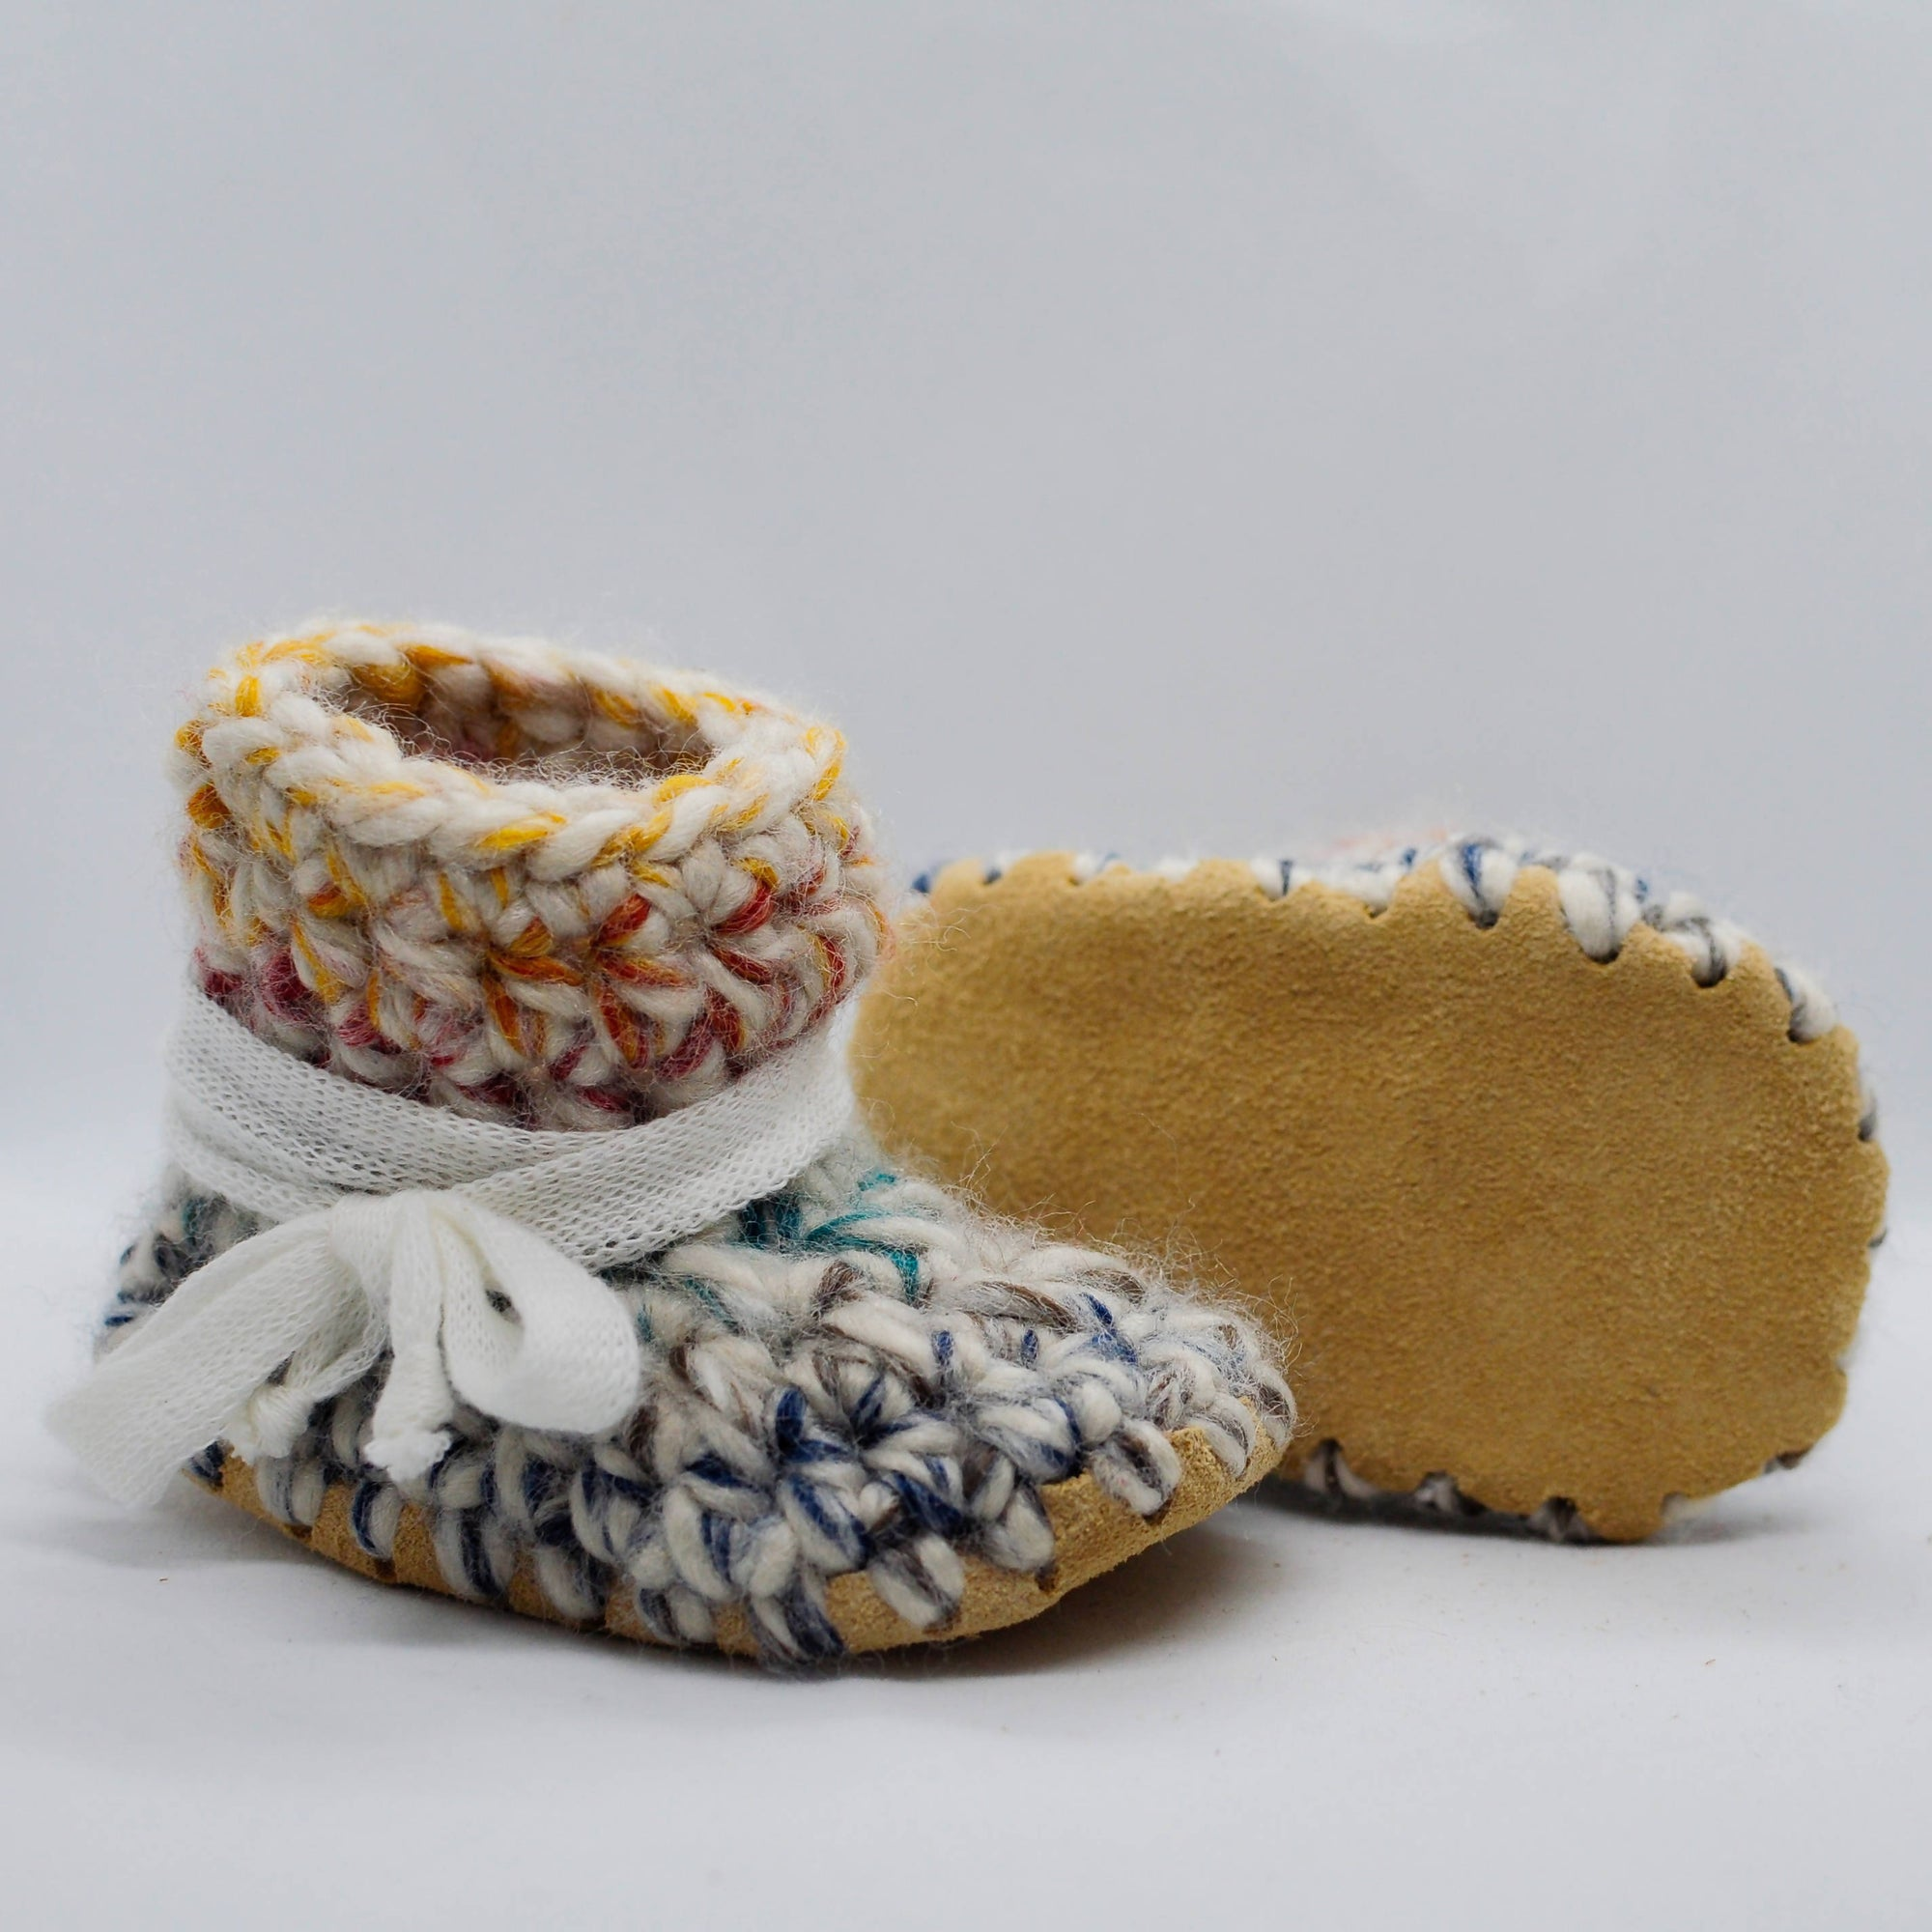 HUDSON BABY BOOTIES / SHOES WITH WHITE SHOELACE TIES